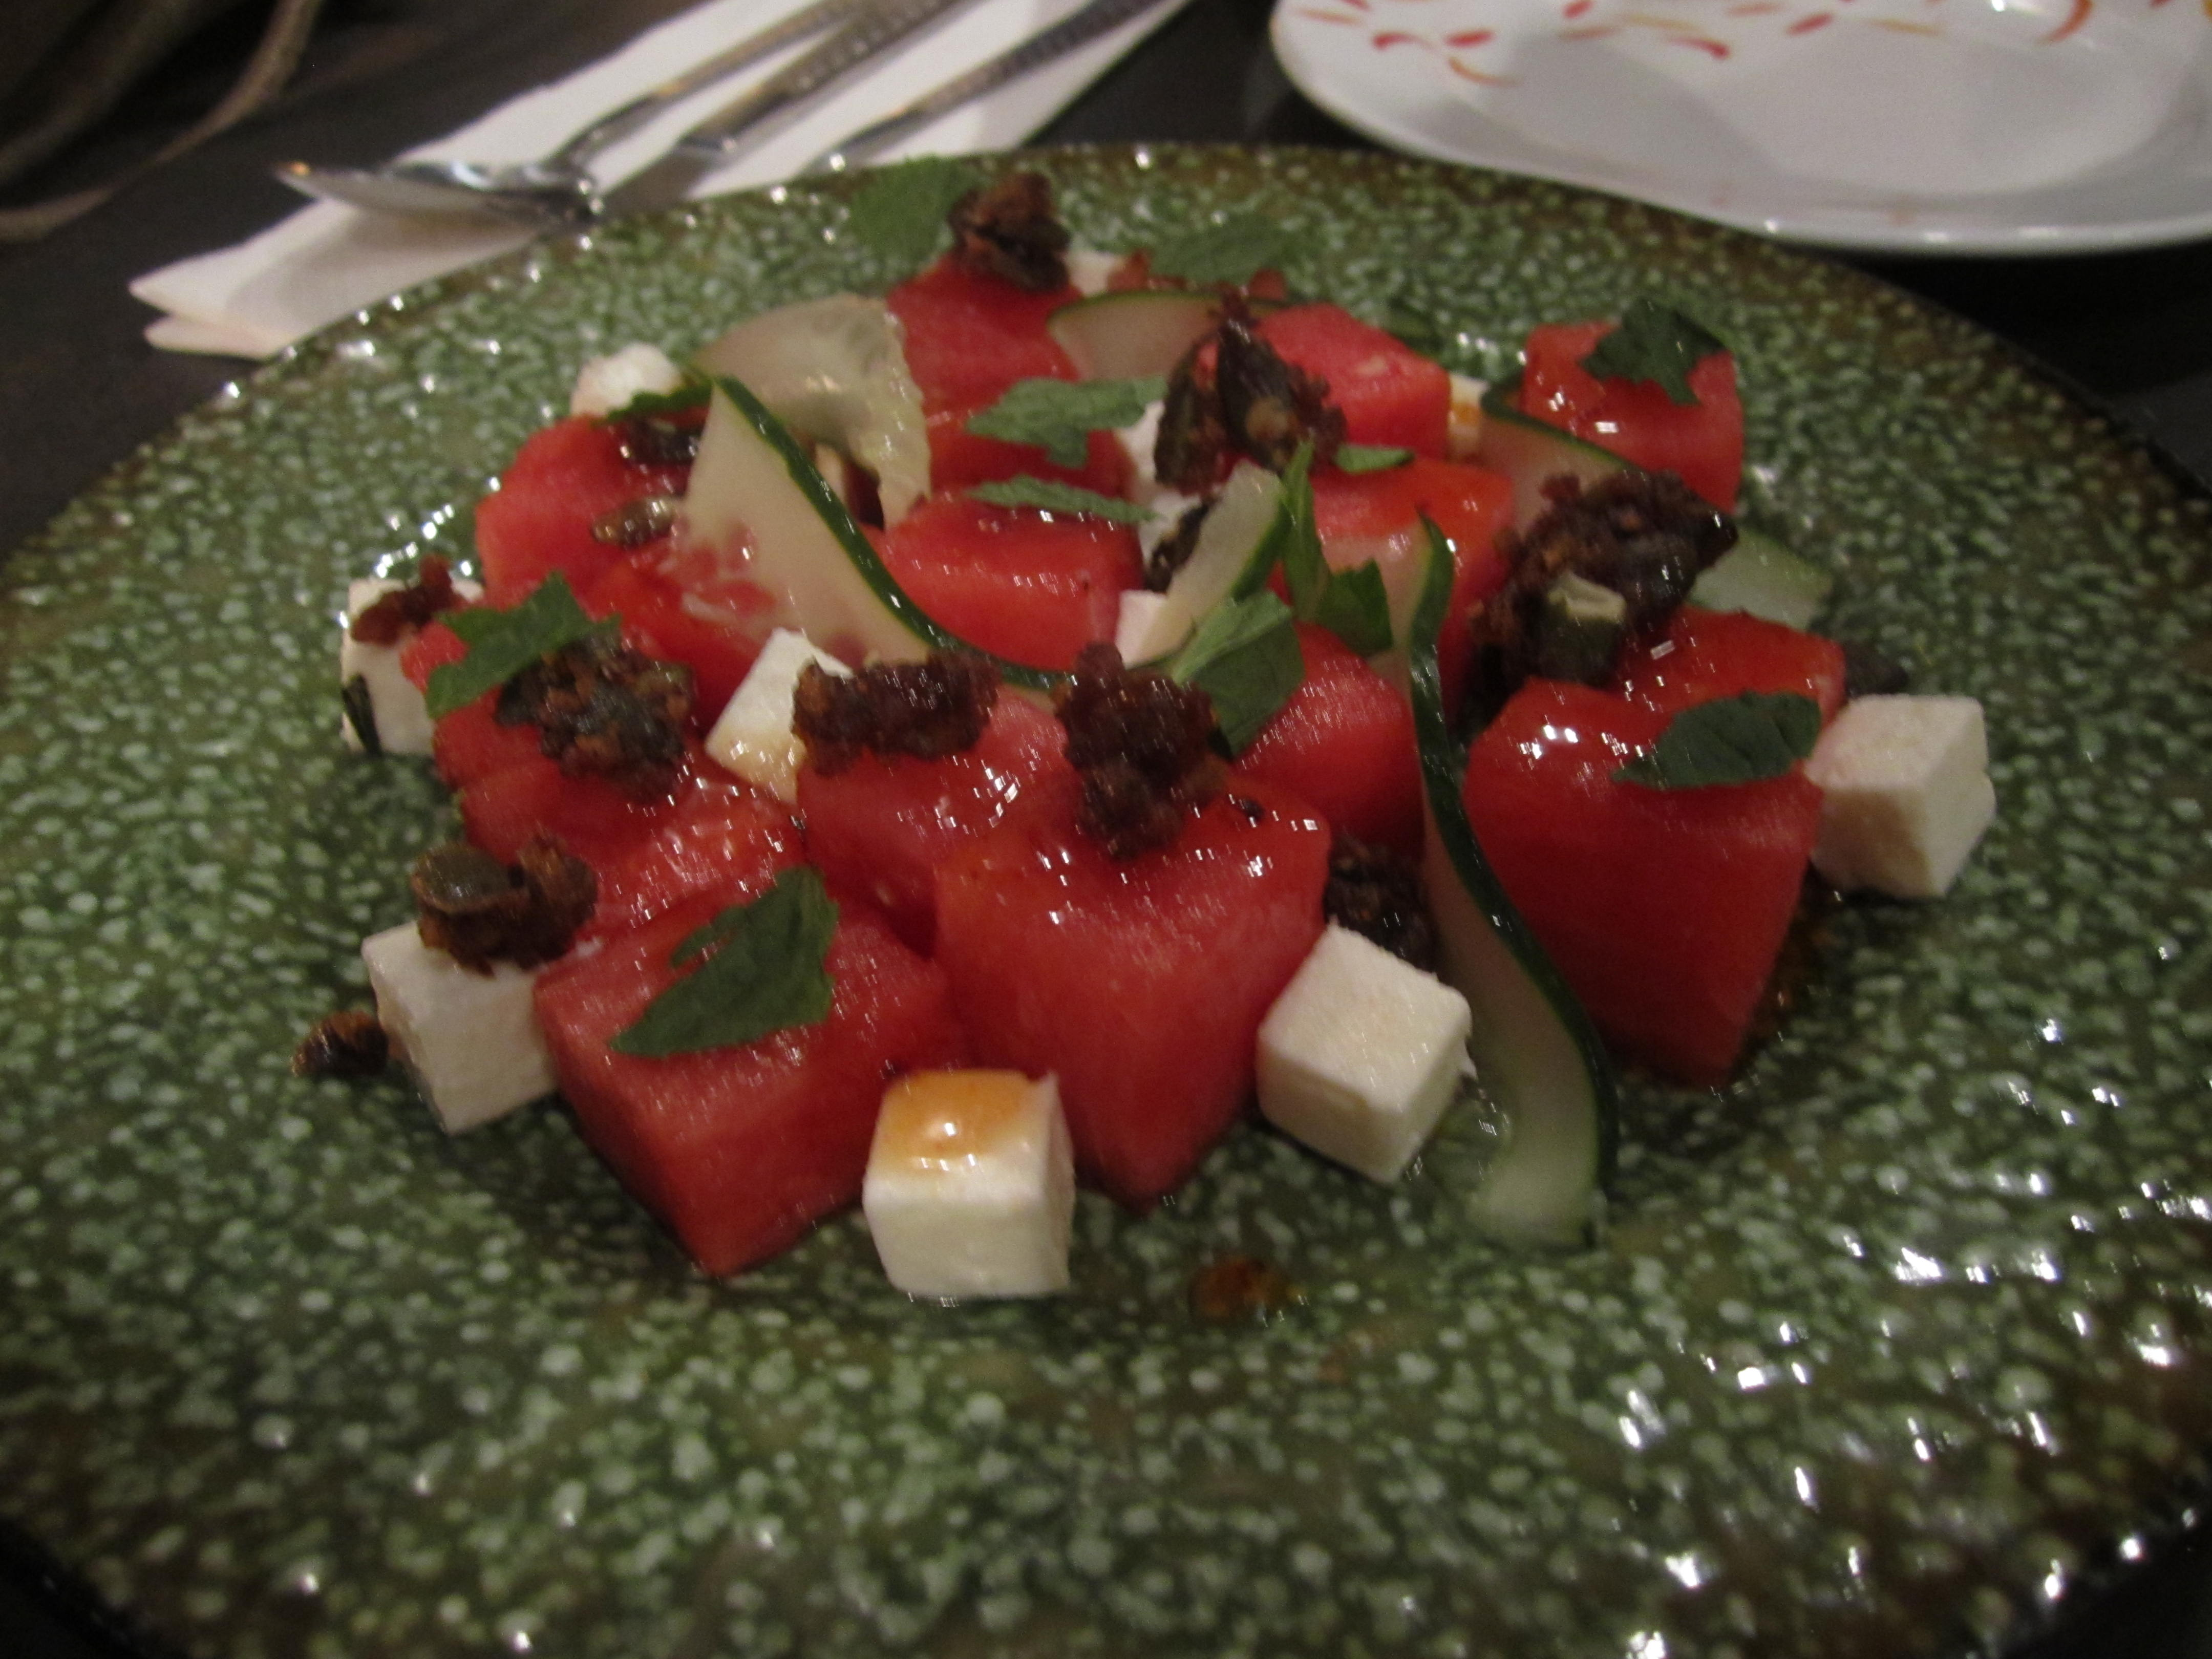 Brickhouse watermelon salad